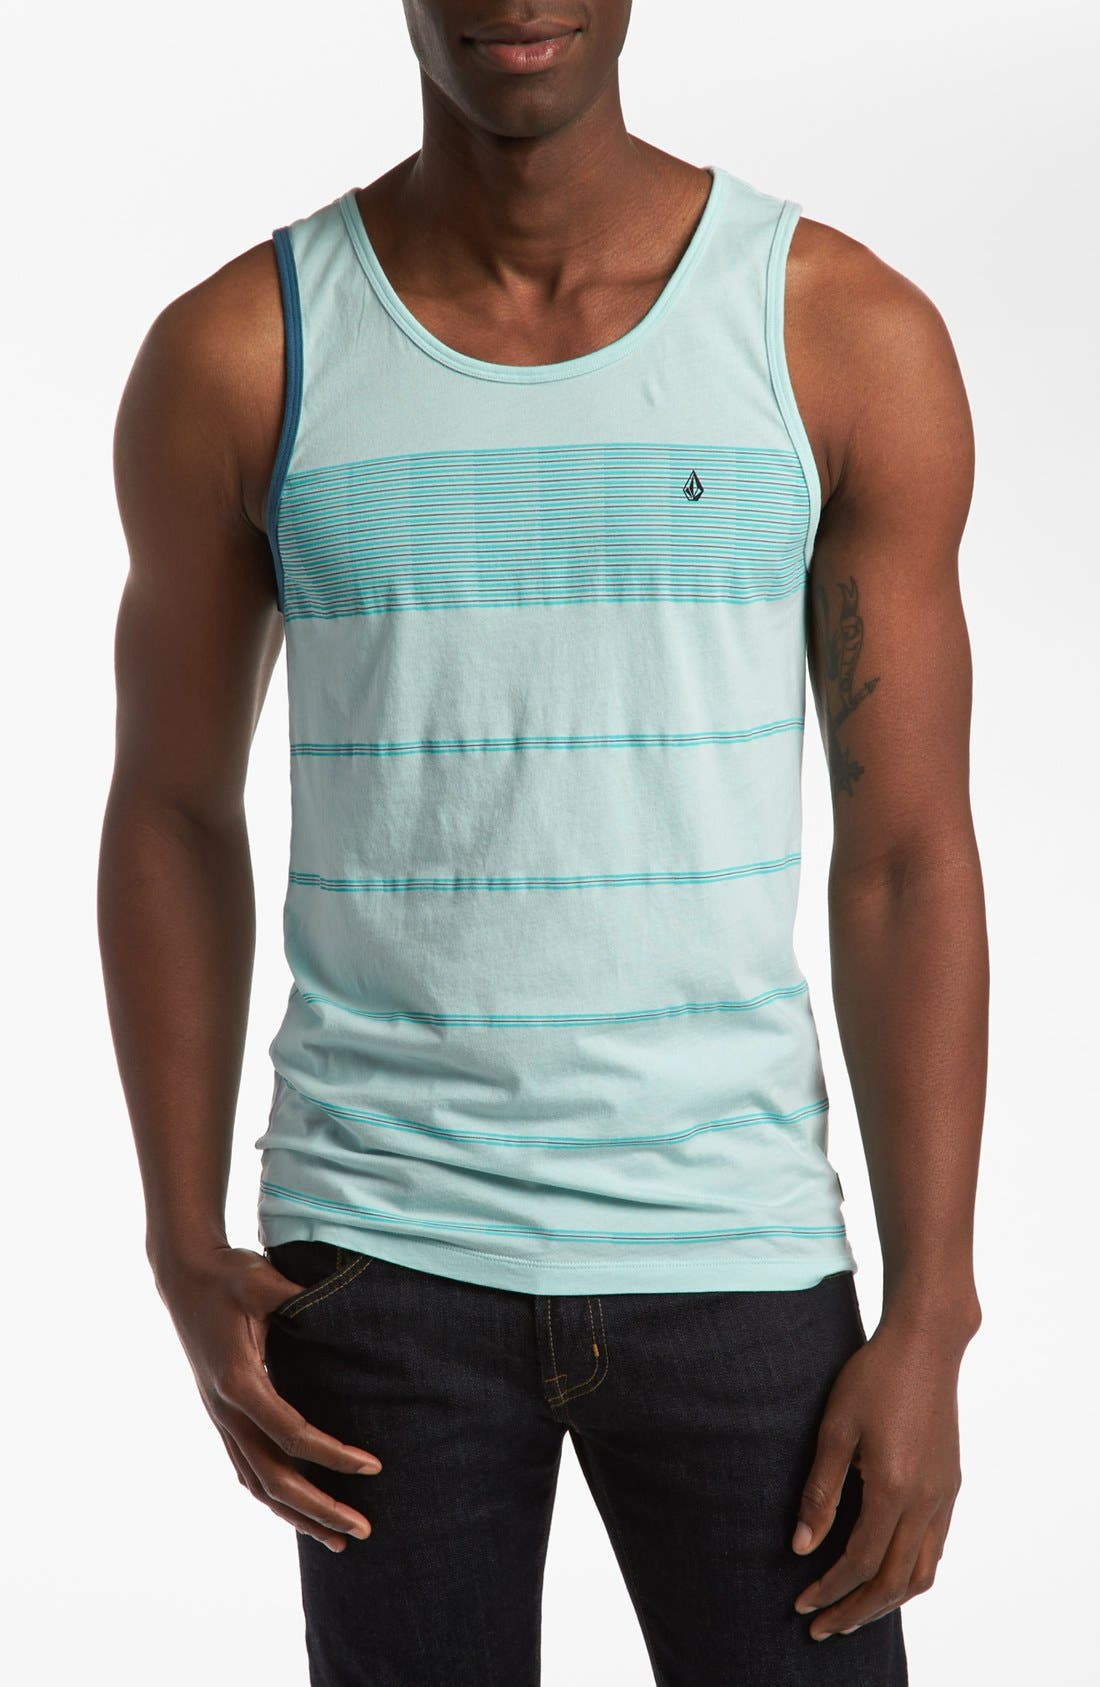 Alternate Image 1 Selected - Volcom 'Blackout Stripe' Classic Fit Tank Top